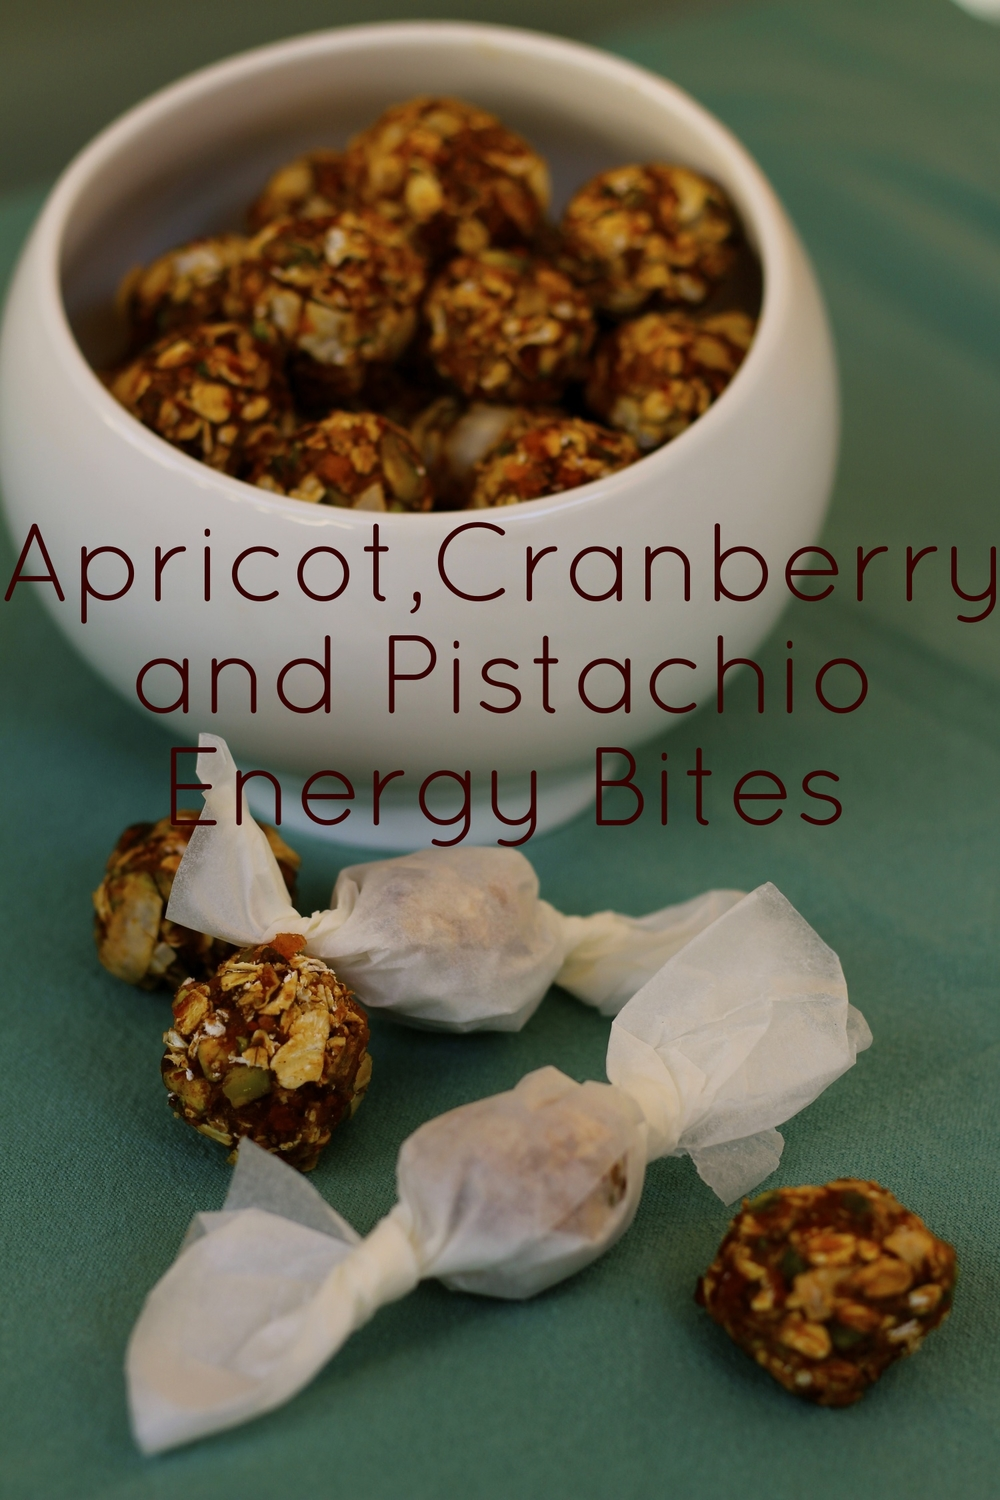 160g of dried apricots, 60g dried cranberries, 1/4 cup pomegranate molasses, 1/4 cup pumpkin puree, 1 tbsp flax seeds, 1 tsp ground cinnamon, 1/2 tsp ground cardamom, a pinch of salt. Blend all ingredients in a blender. Then add 1 cup oats, 1 cup peeled pistachios, 1 cup coconut flakes. Mix well and refrigerate for an hour before rolling into small balls. Makes approx. 24. 160g de alperces secos, 60g de arandos secos, 1/4 chávena melaço de romã, 1/4 chávena de puré de abóbora, 1 colher de sopa de sementes de linhaça, 1 colher de chá de canela, 1/2 colher de chá de cardamomo moído, uma pitada de sal. Picar bem numa picadora. Depois juntar 1 chávena de flocos de aveia, 1 chávena de pistachios sem pele, 1 chávena de coco em flocos. Misturar bem e refrigerar por uma hora e depois enrolar em bolas pequenas. Faz 24 porções aprox. One bite: 95 kcal, 1.9 g protein, 14.2g carbohydrates of which 8.6 sugars, 3.7g fats of which 1.3g saturated, 1.8g fibre